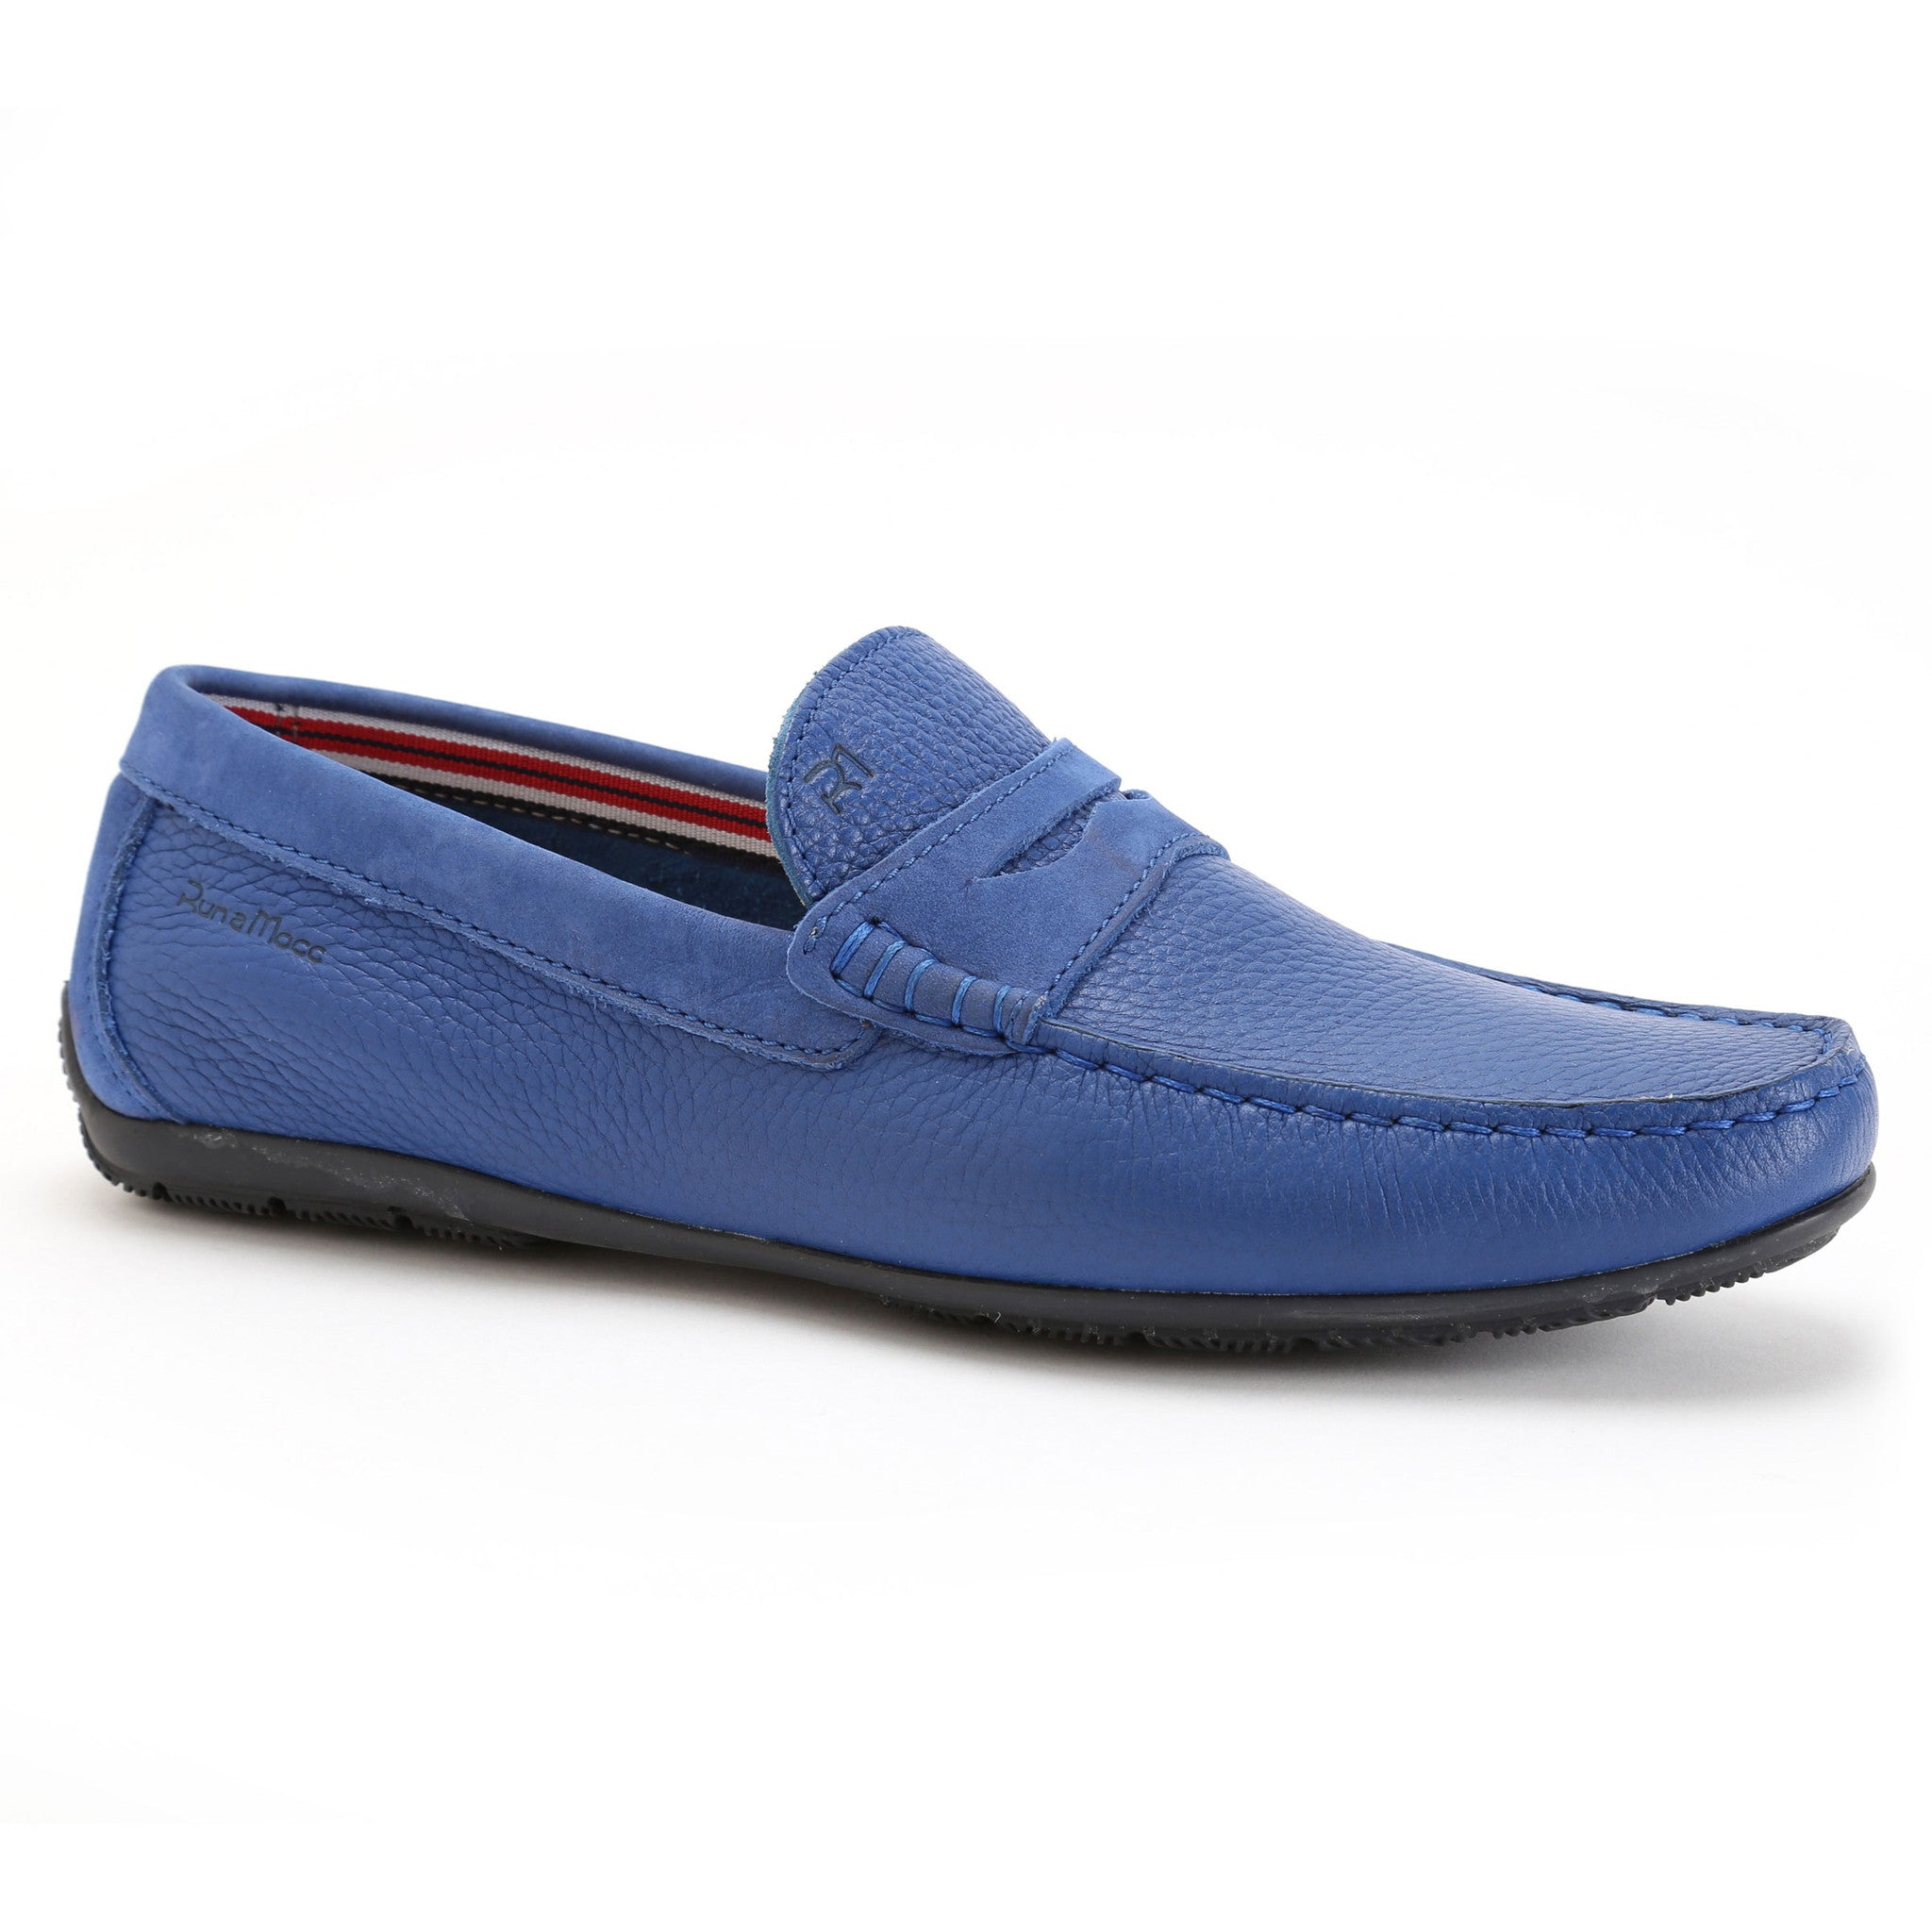 Grained Electric Blue Leather/Royal Blue Nubuck